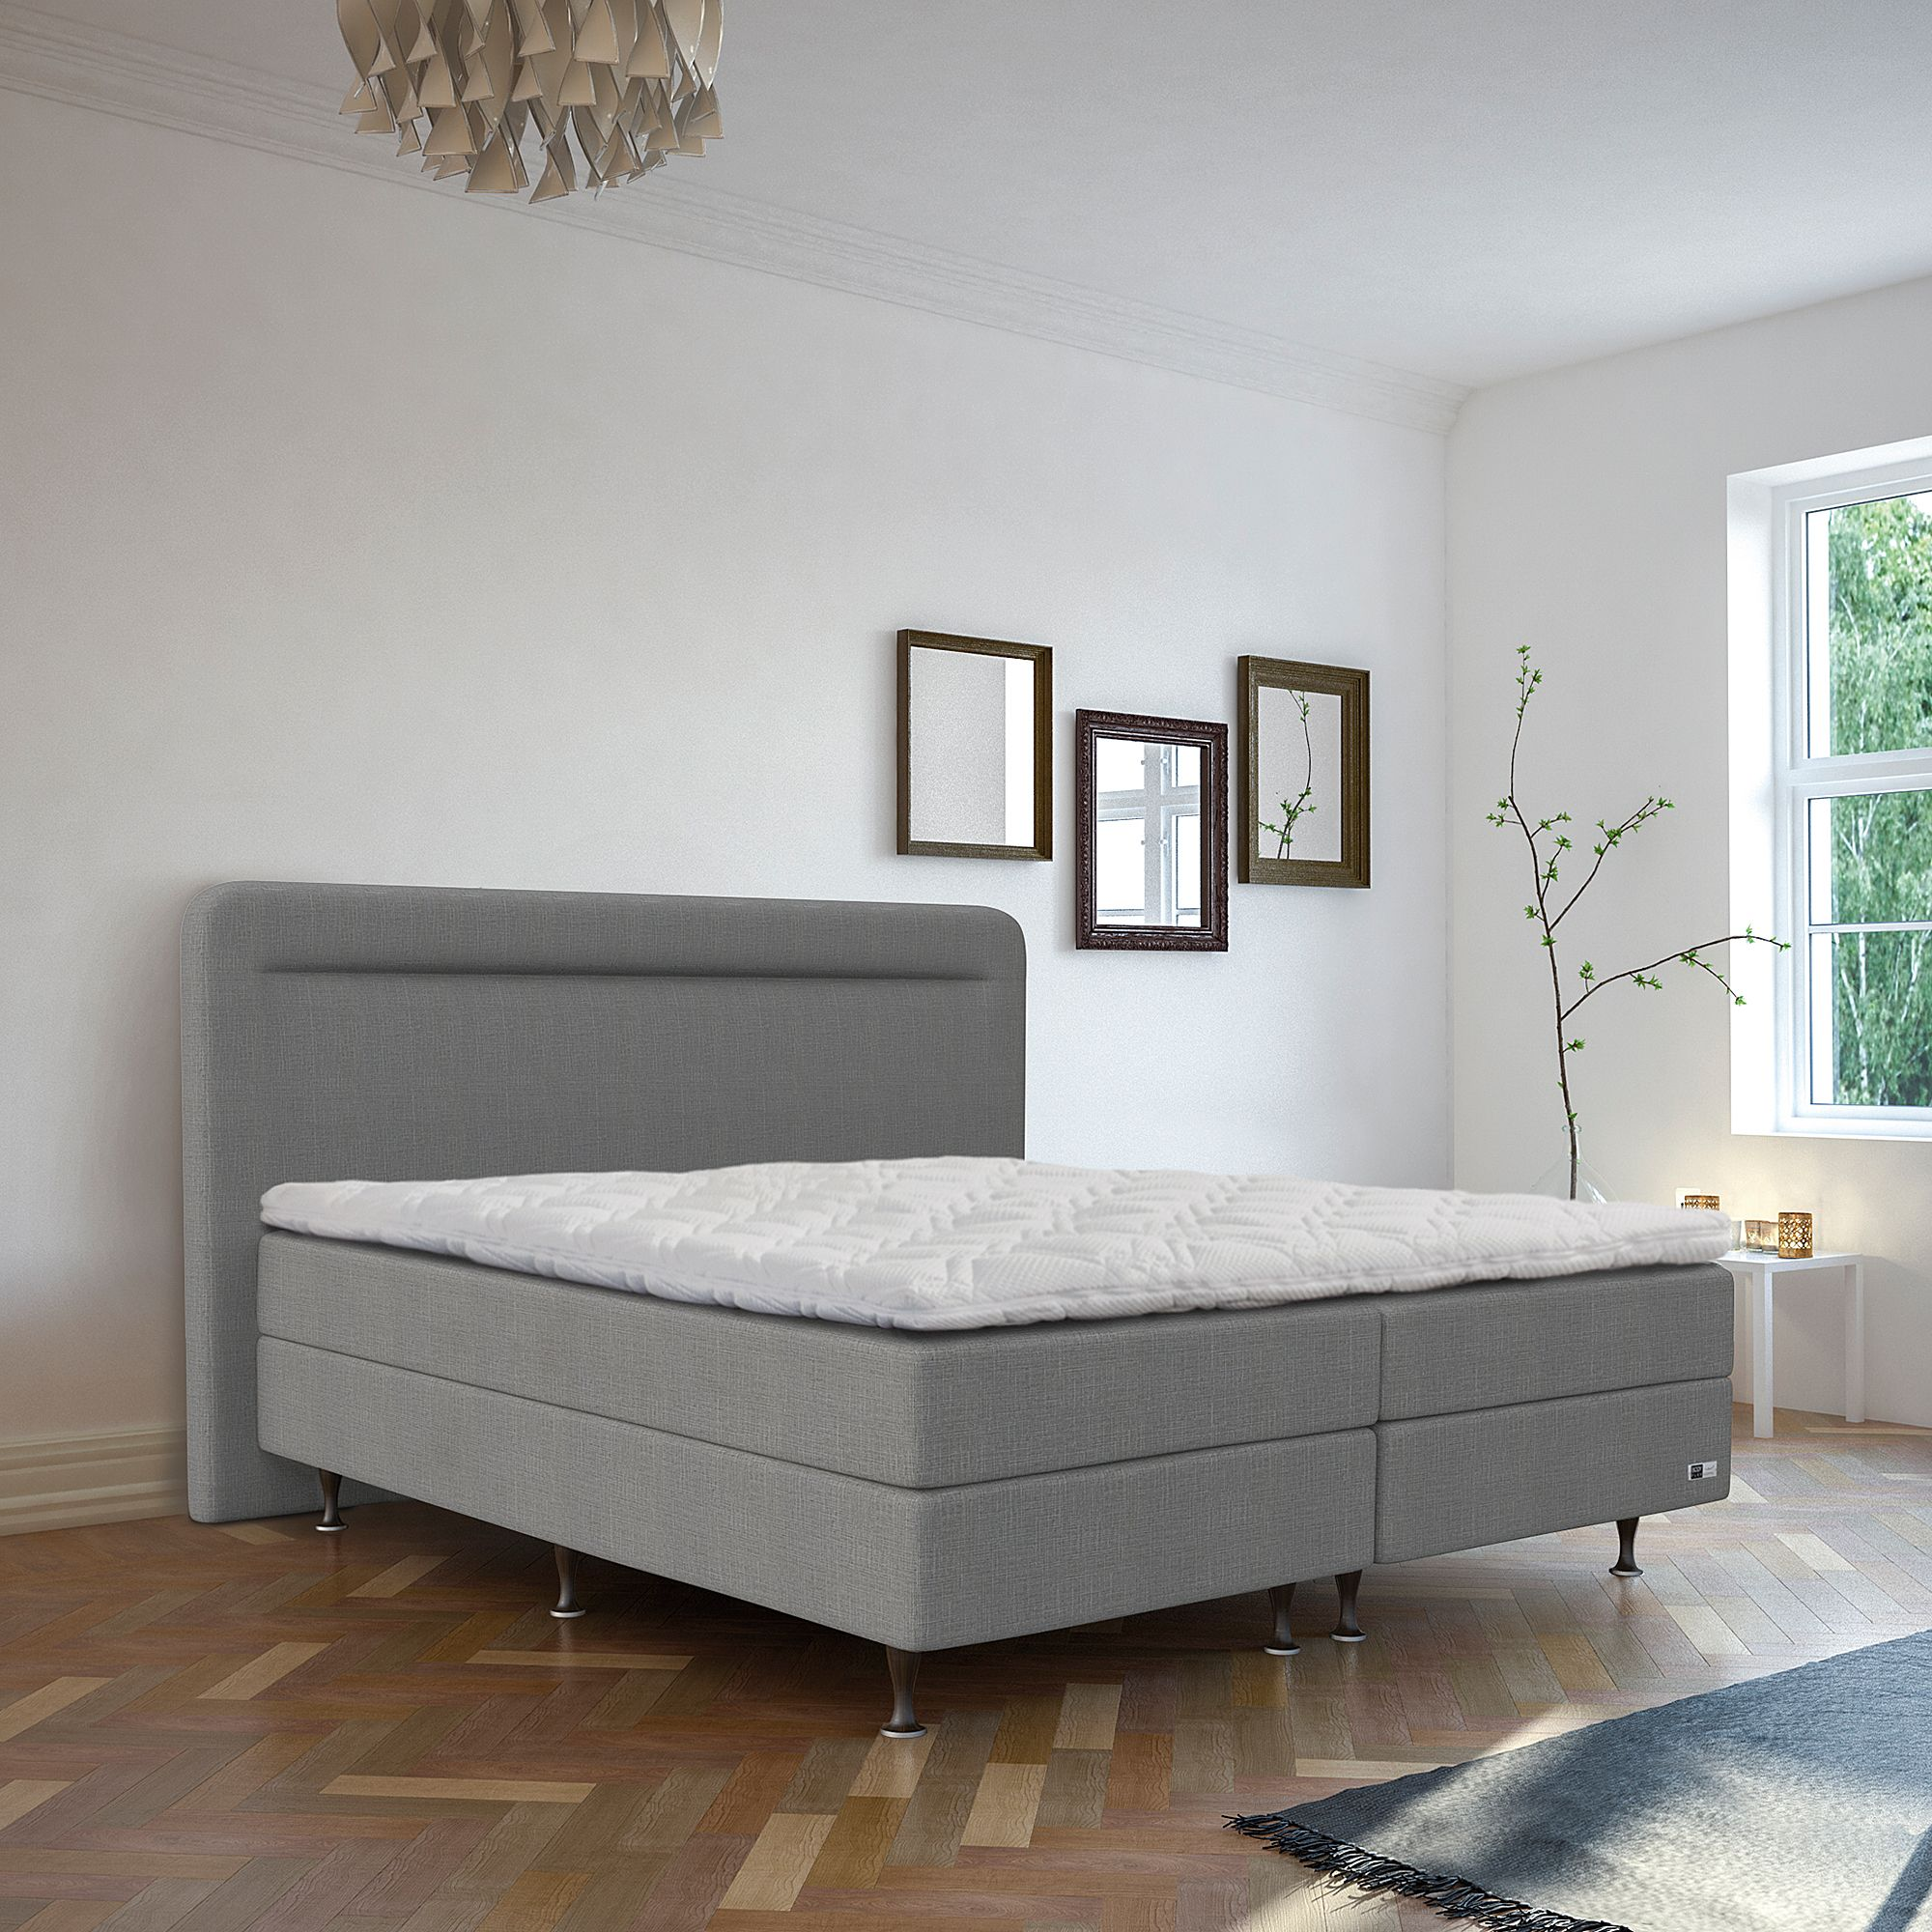 Boxspring Trends Bodyflex Boxspring Bett Vario Serie Deluxe Wendetopper Variable